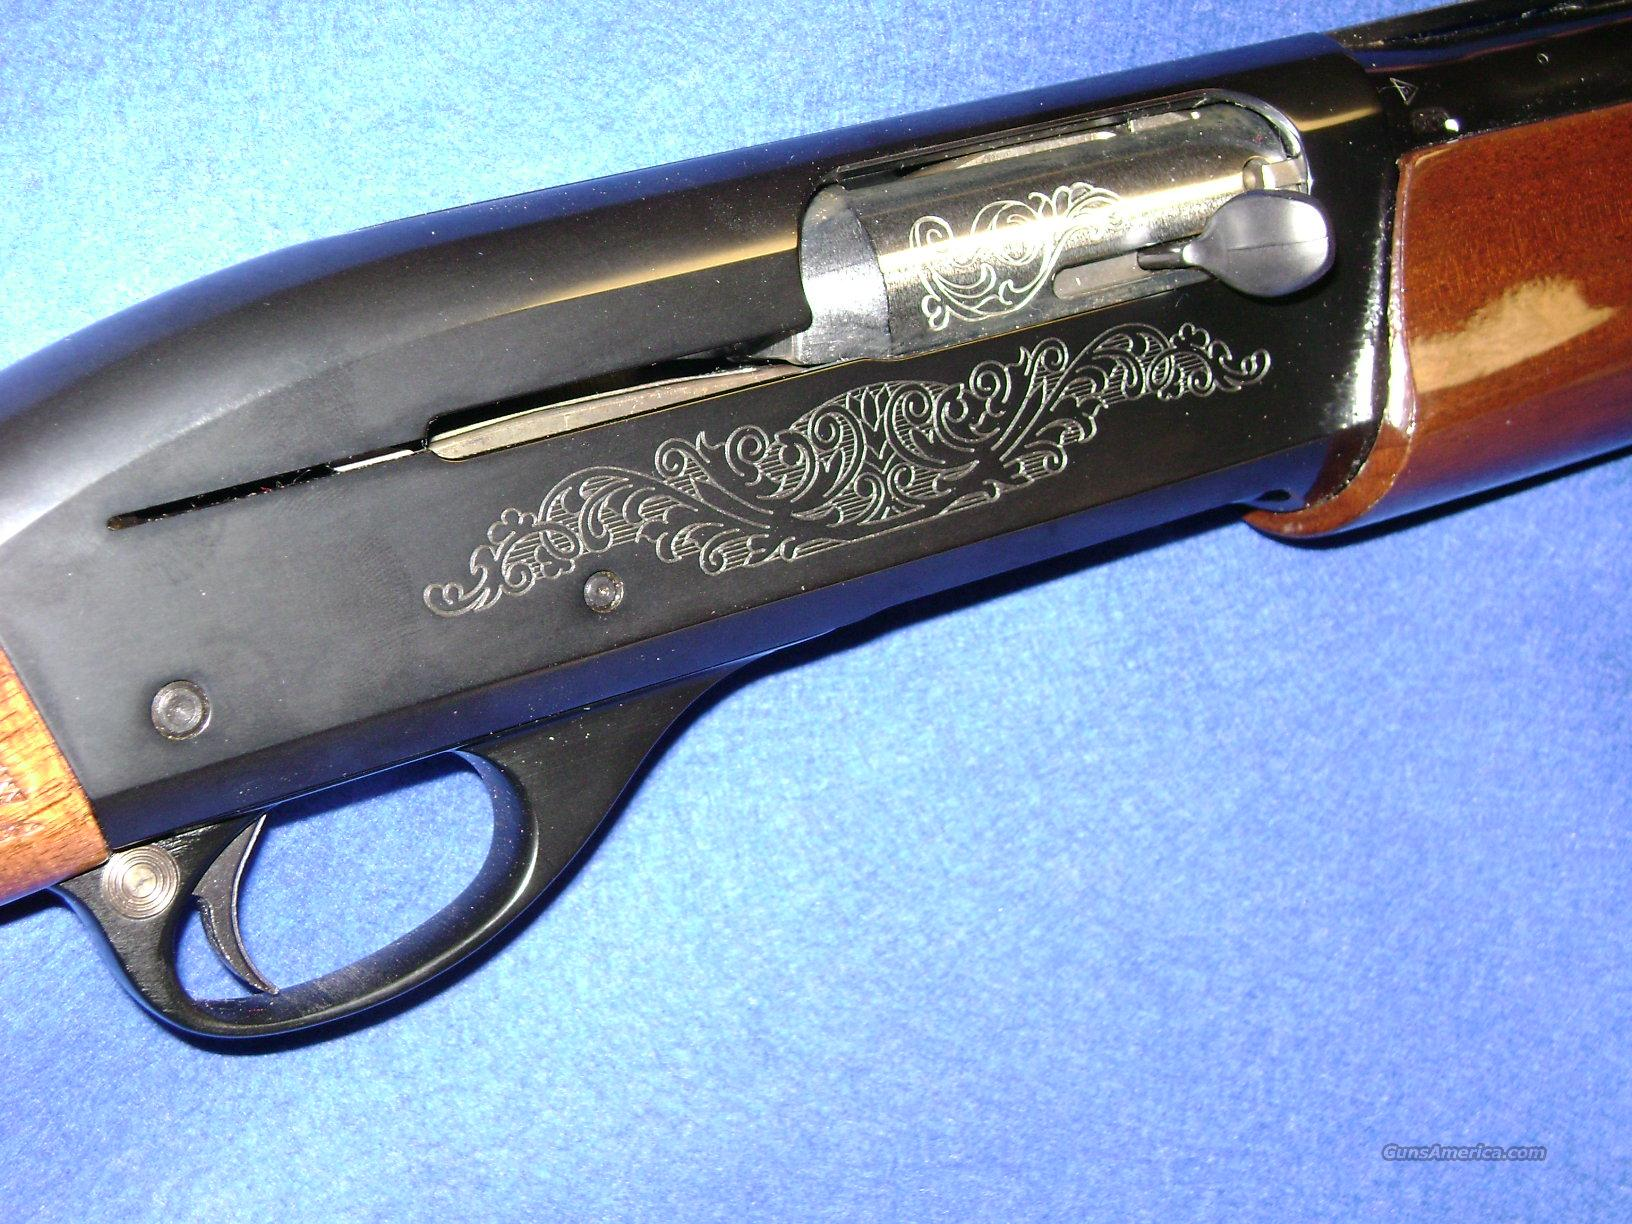 Remington 1100 Semi Auto Shotgun for sale